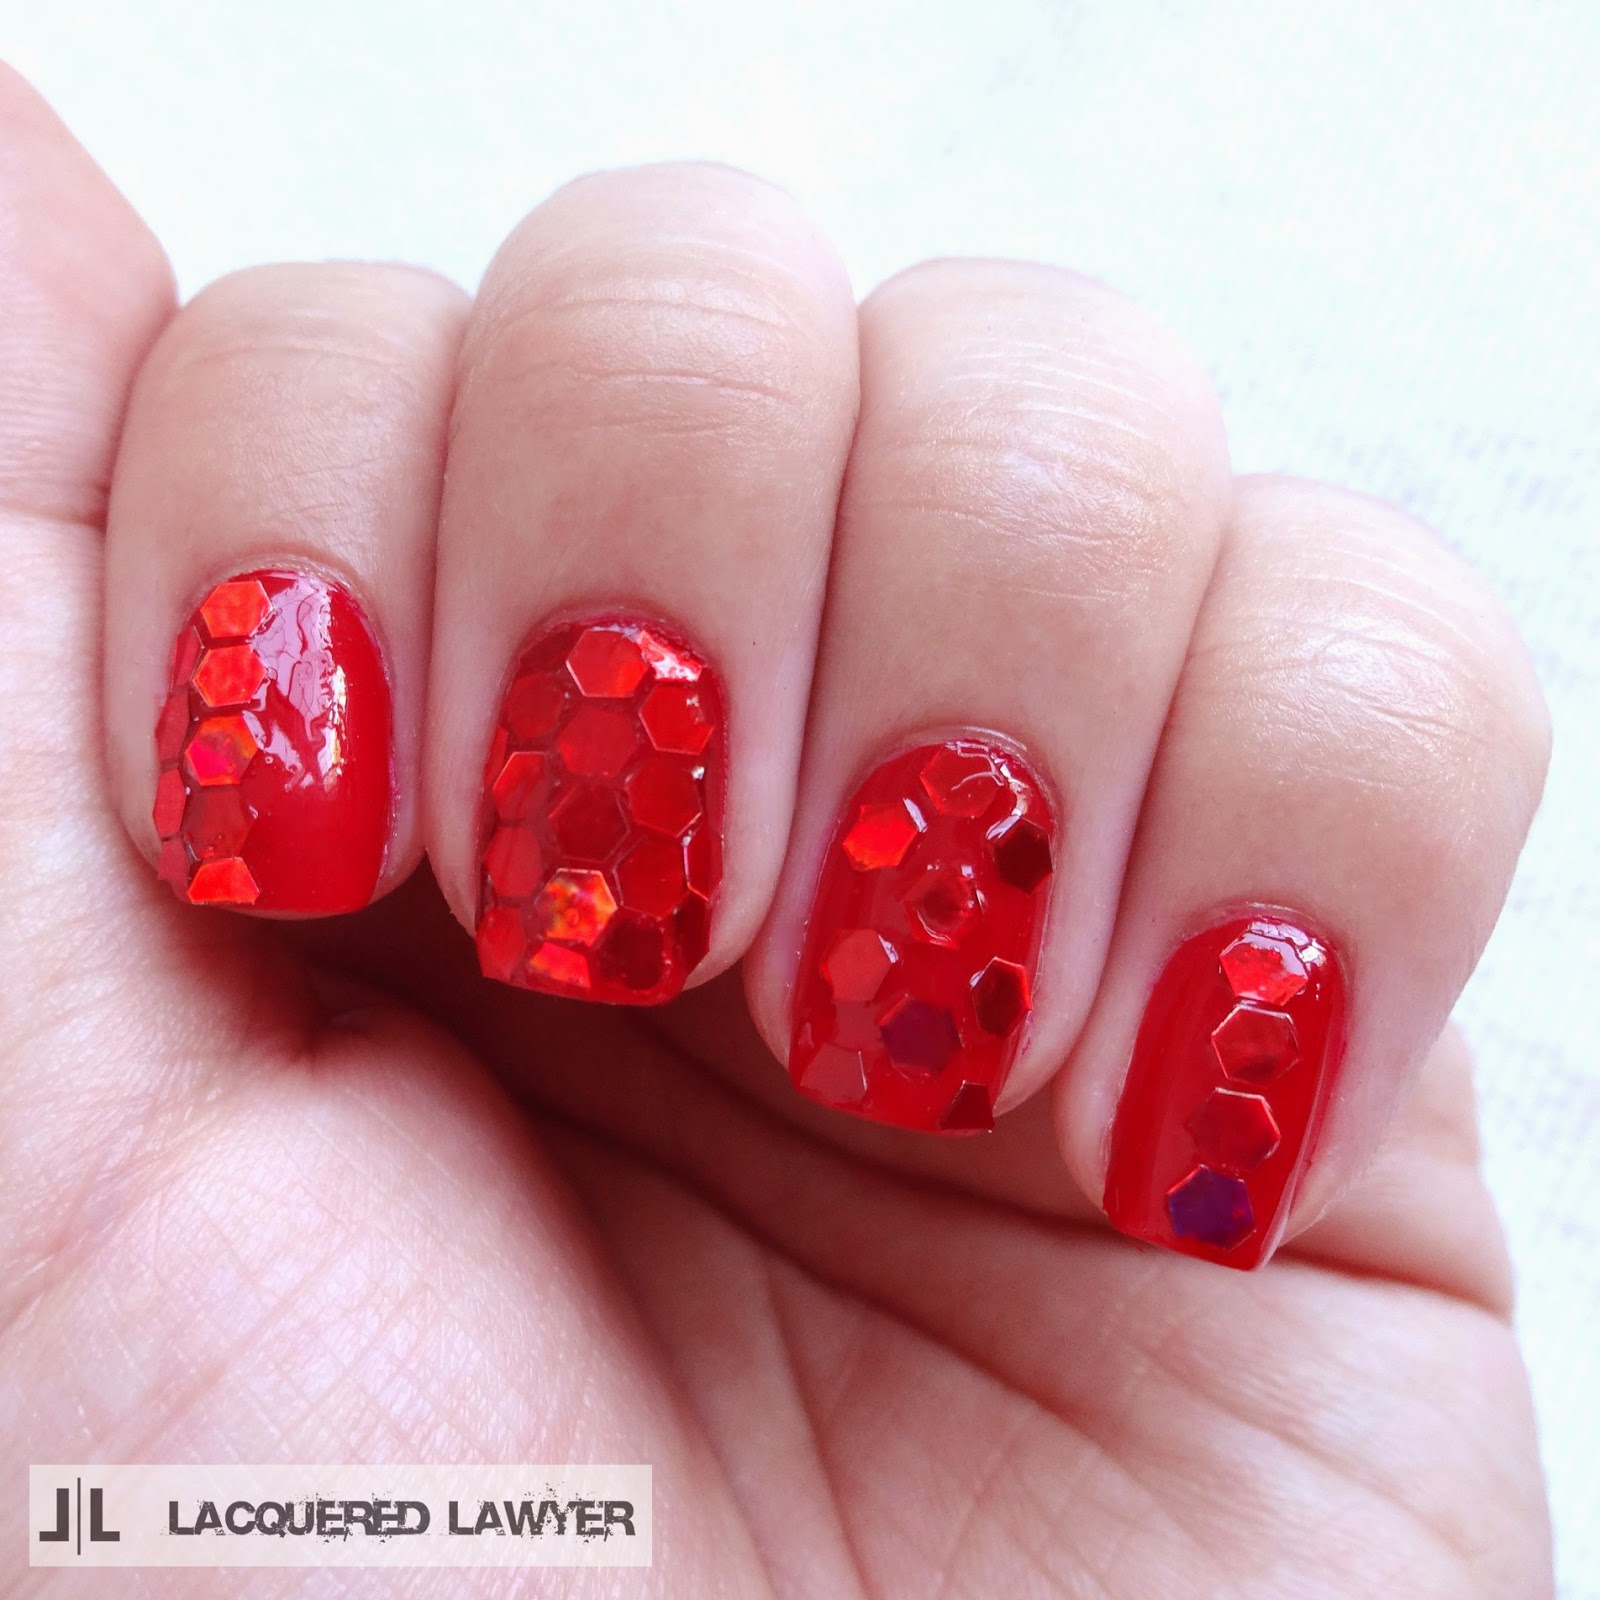 Lacquered Lawyer | Nail Art Blog: June Nail Art Society - Red Glitter